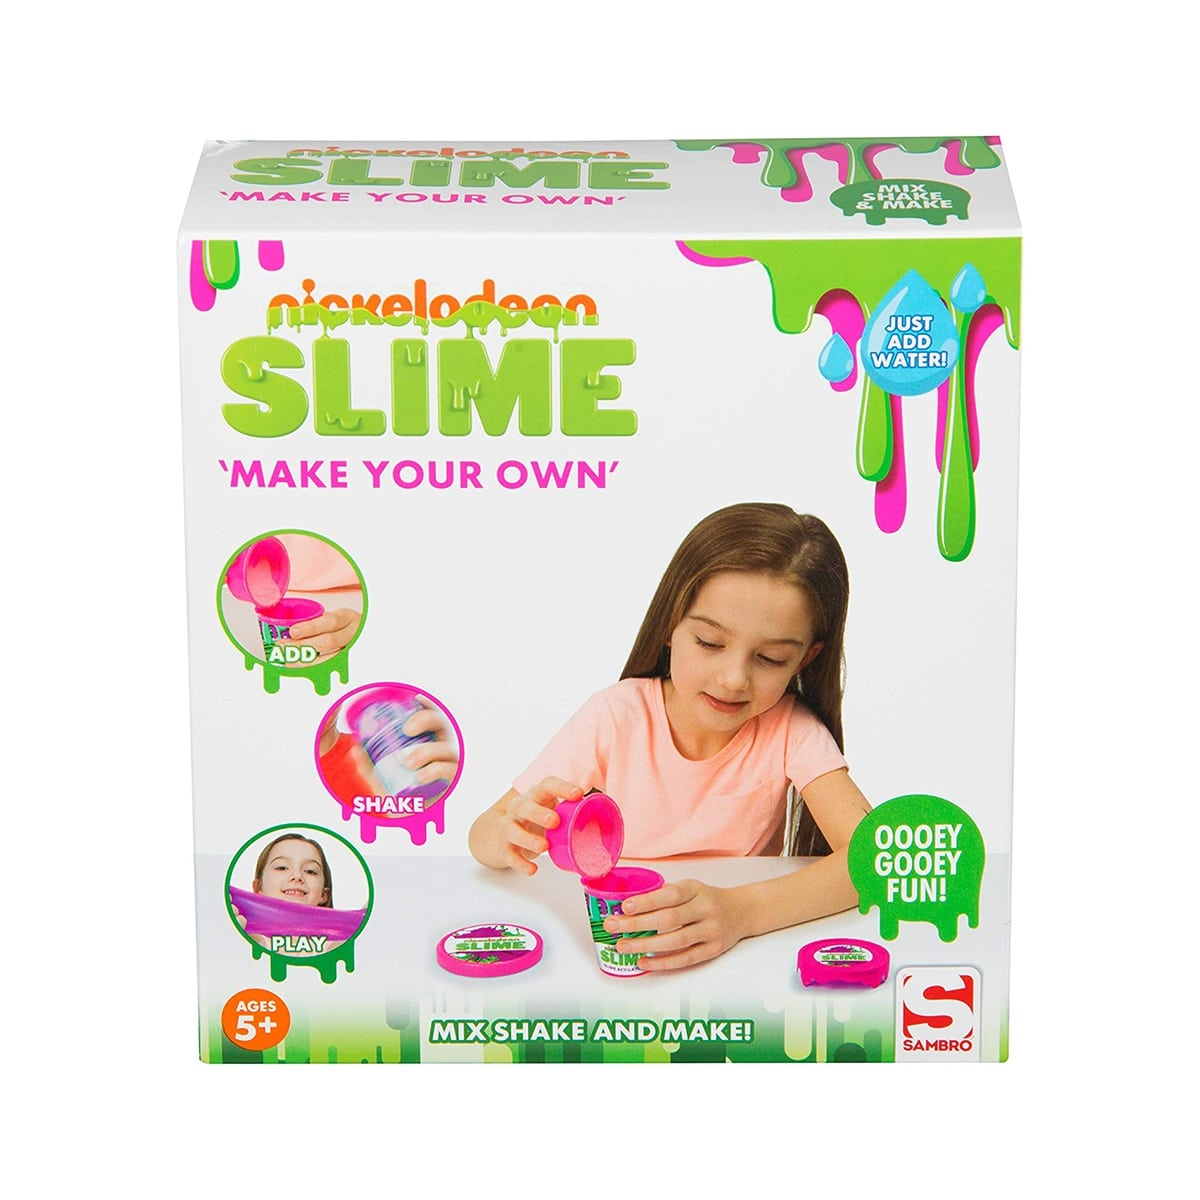 SLIME MAKE YOUR OWN NICKELODEON